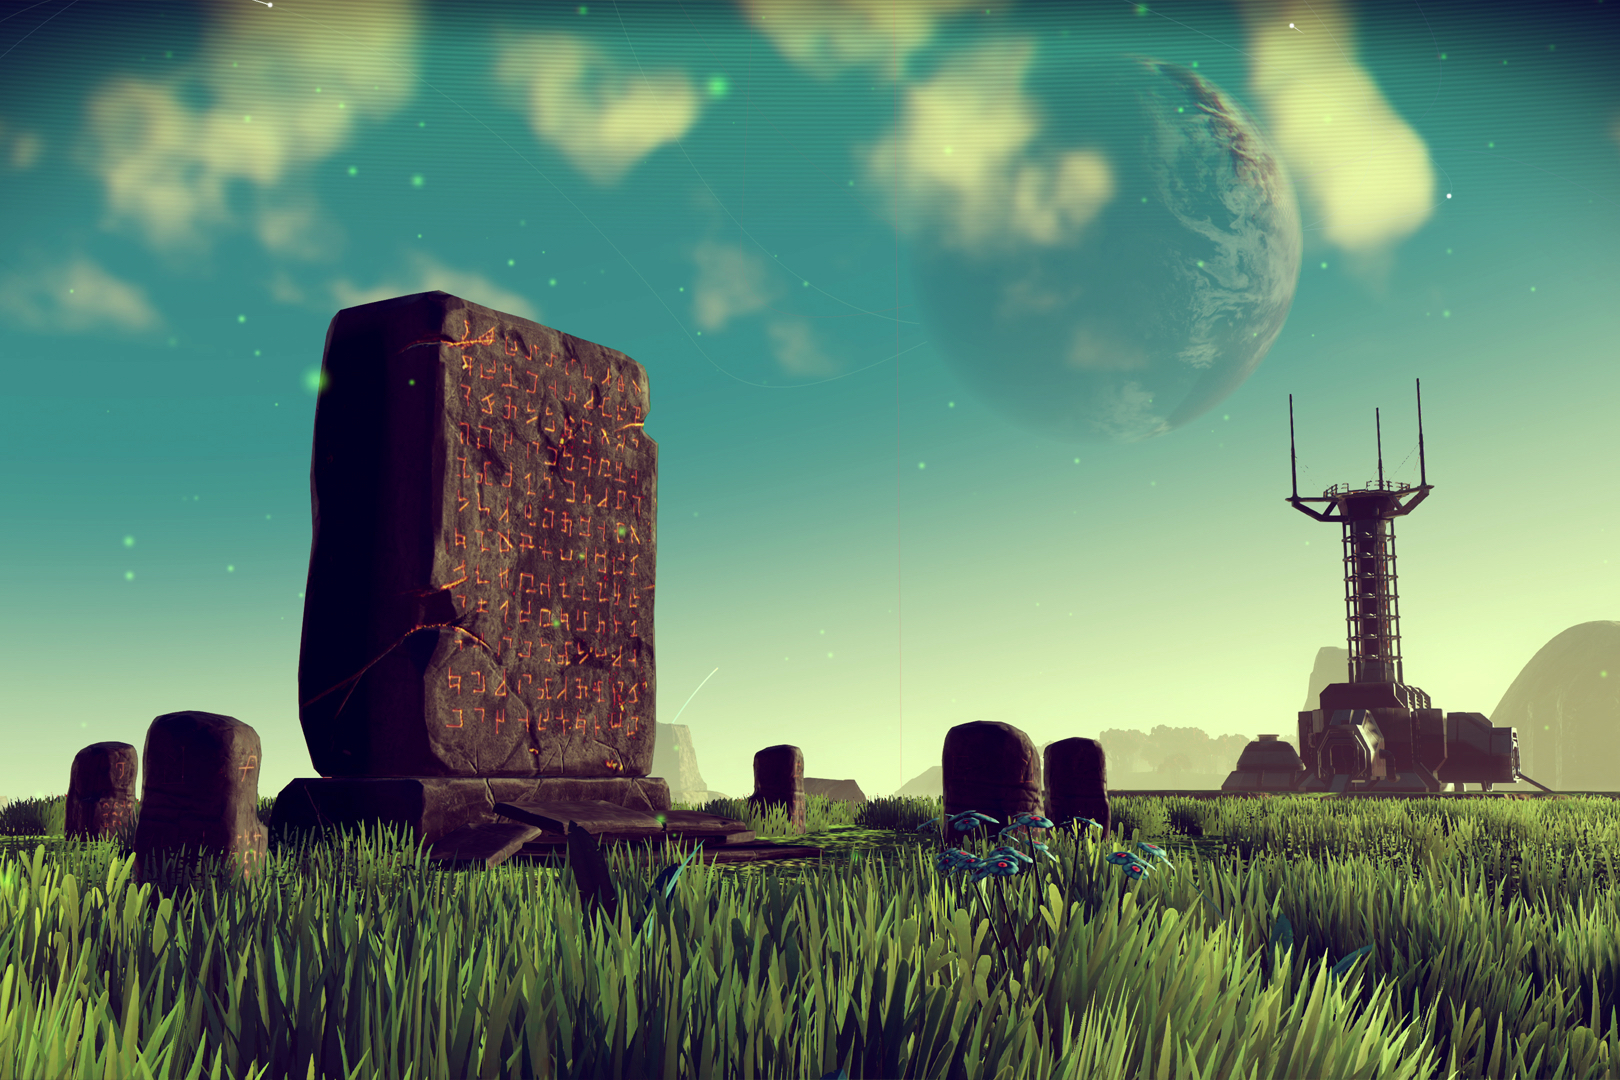 No Man's Sky 65daysofstatic